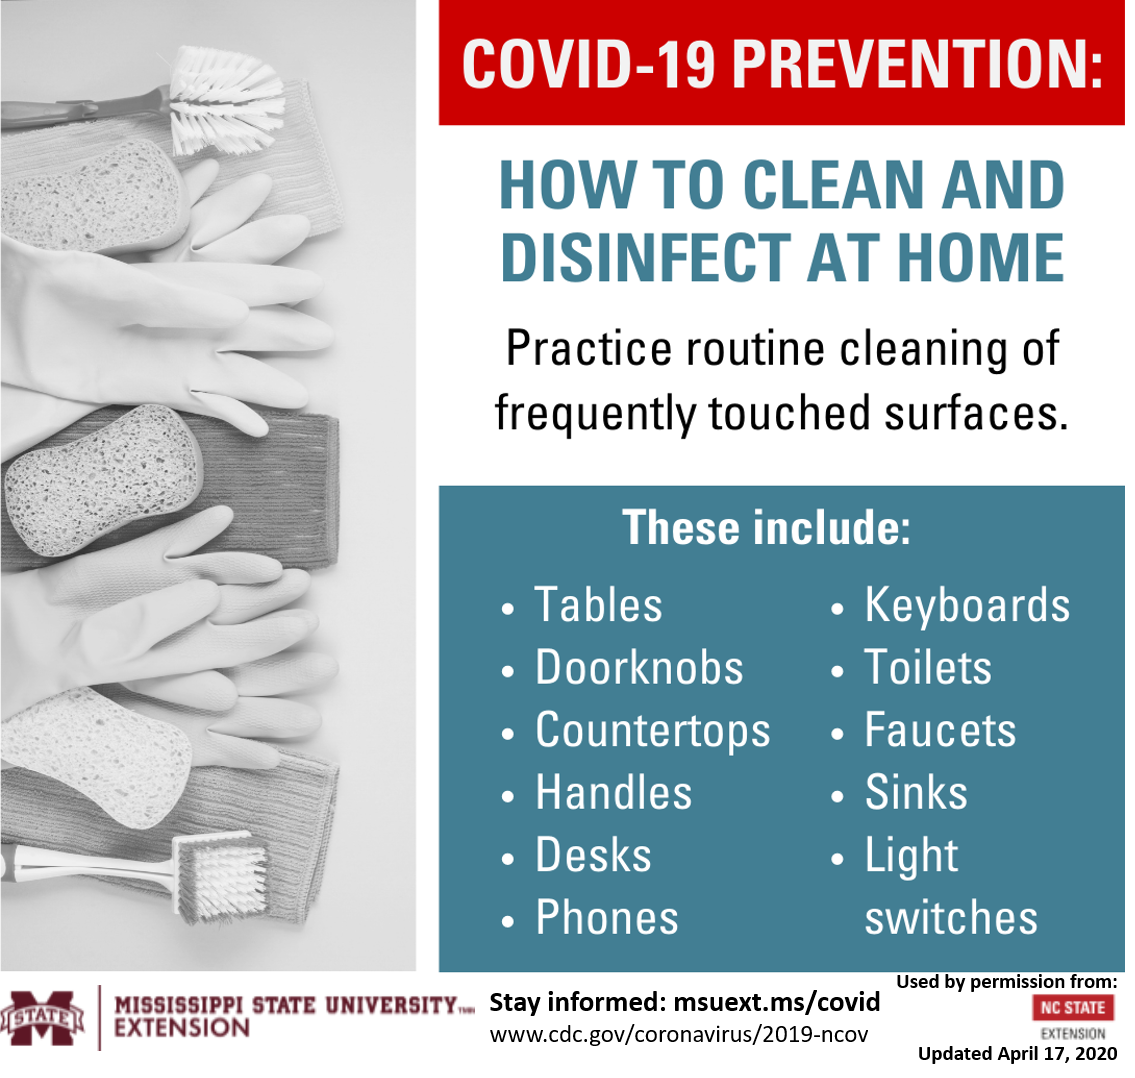 Information on how to clean and disinfect a home.